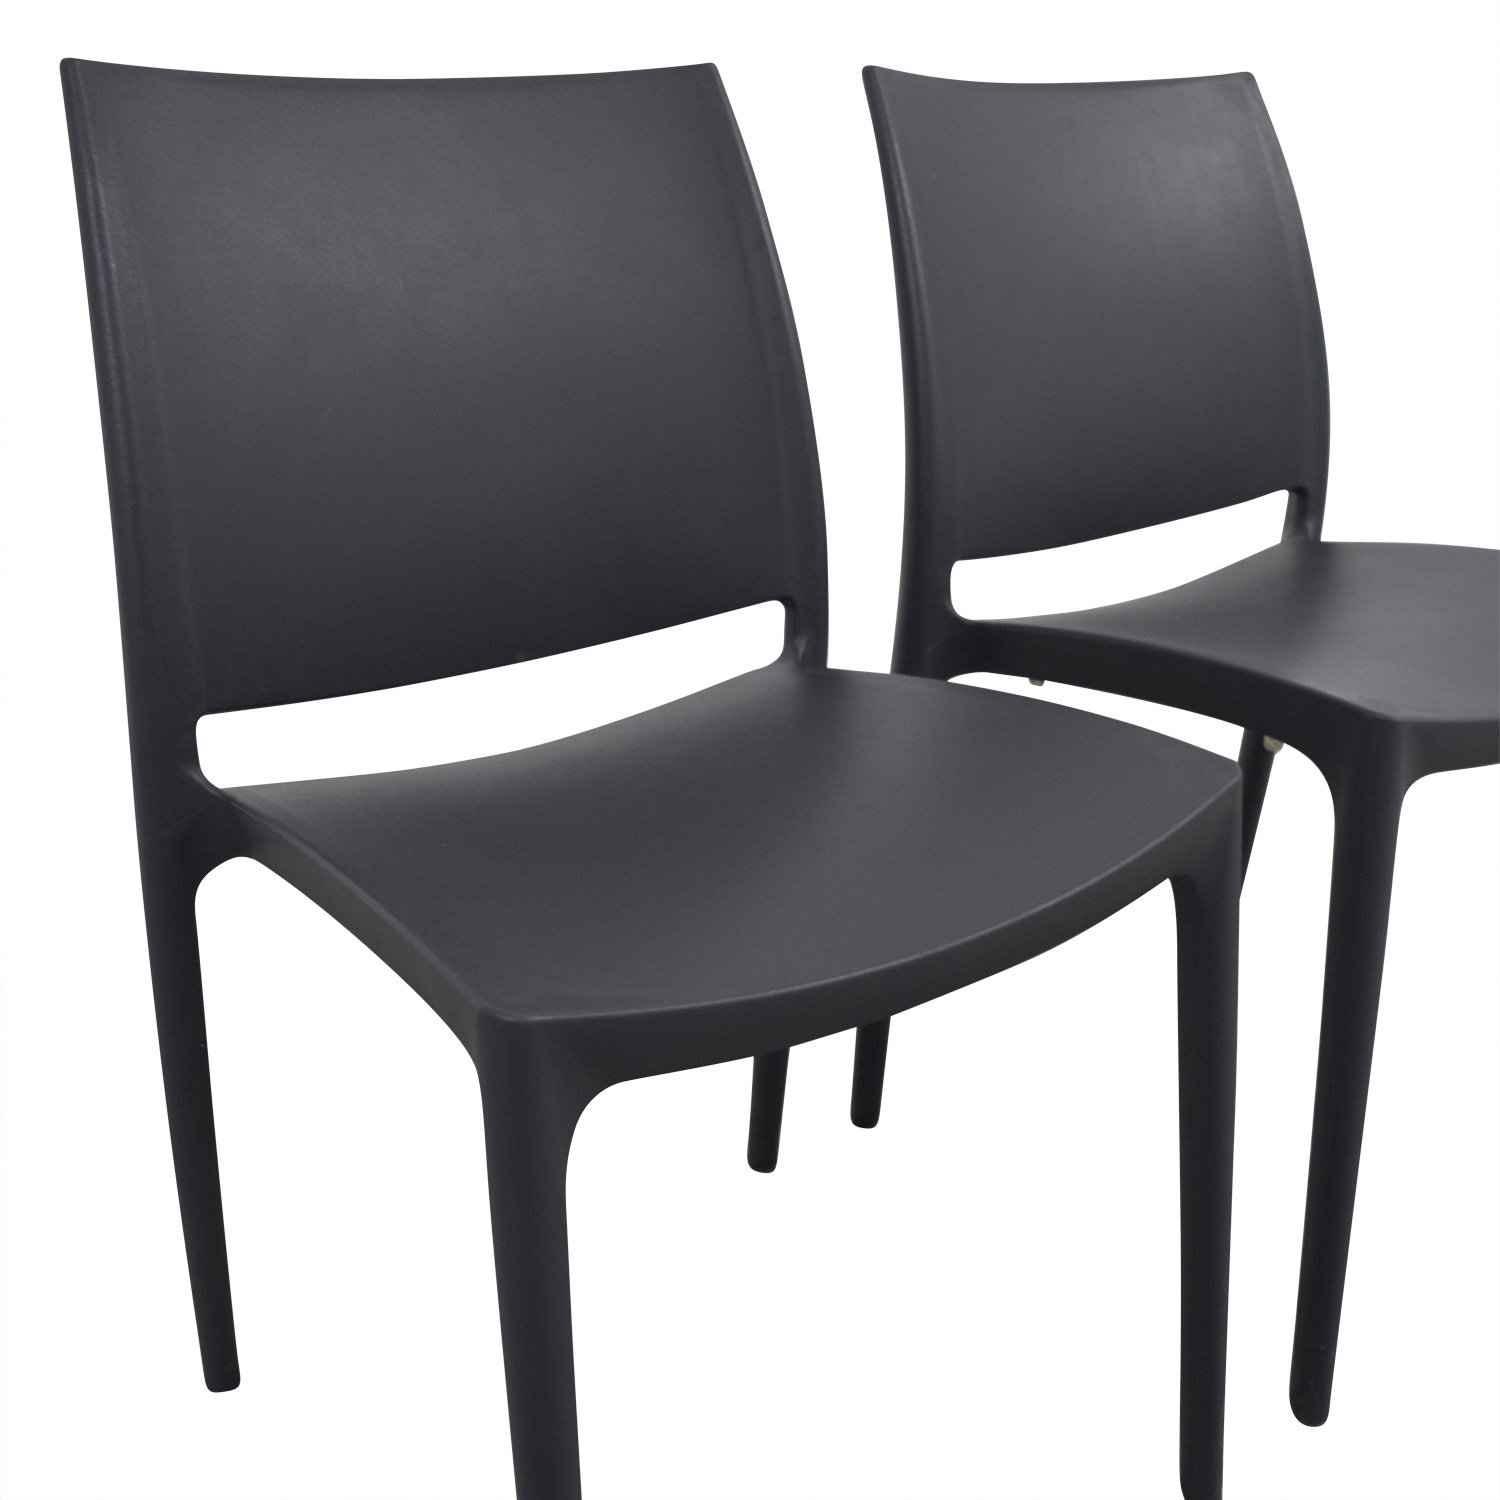 lifetime stacking chairs 2830 black molded seat convertible chair sleeper plastic for sale oscarsfurniture